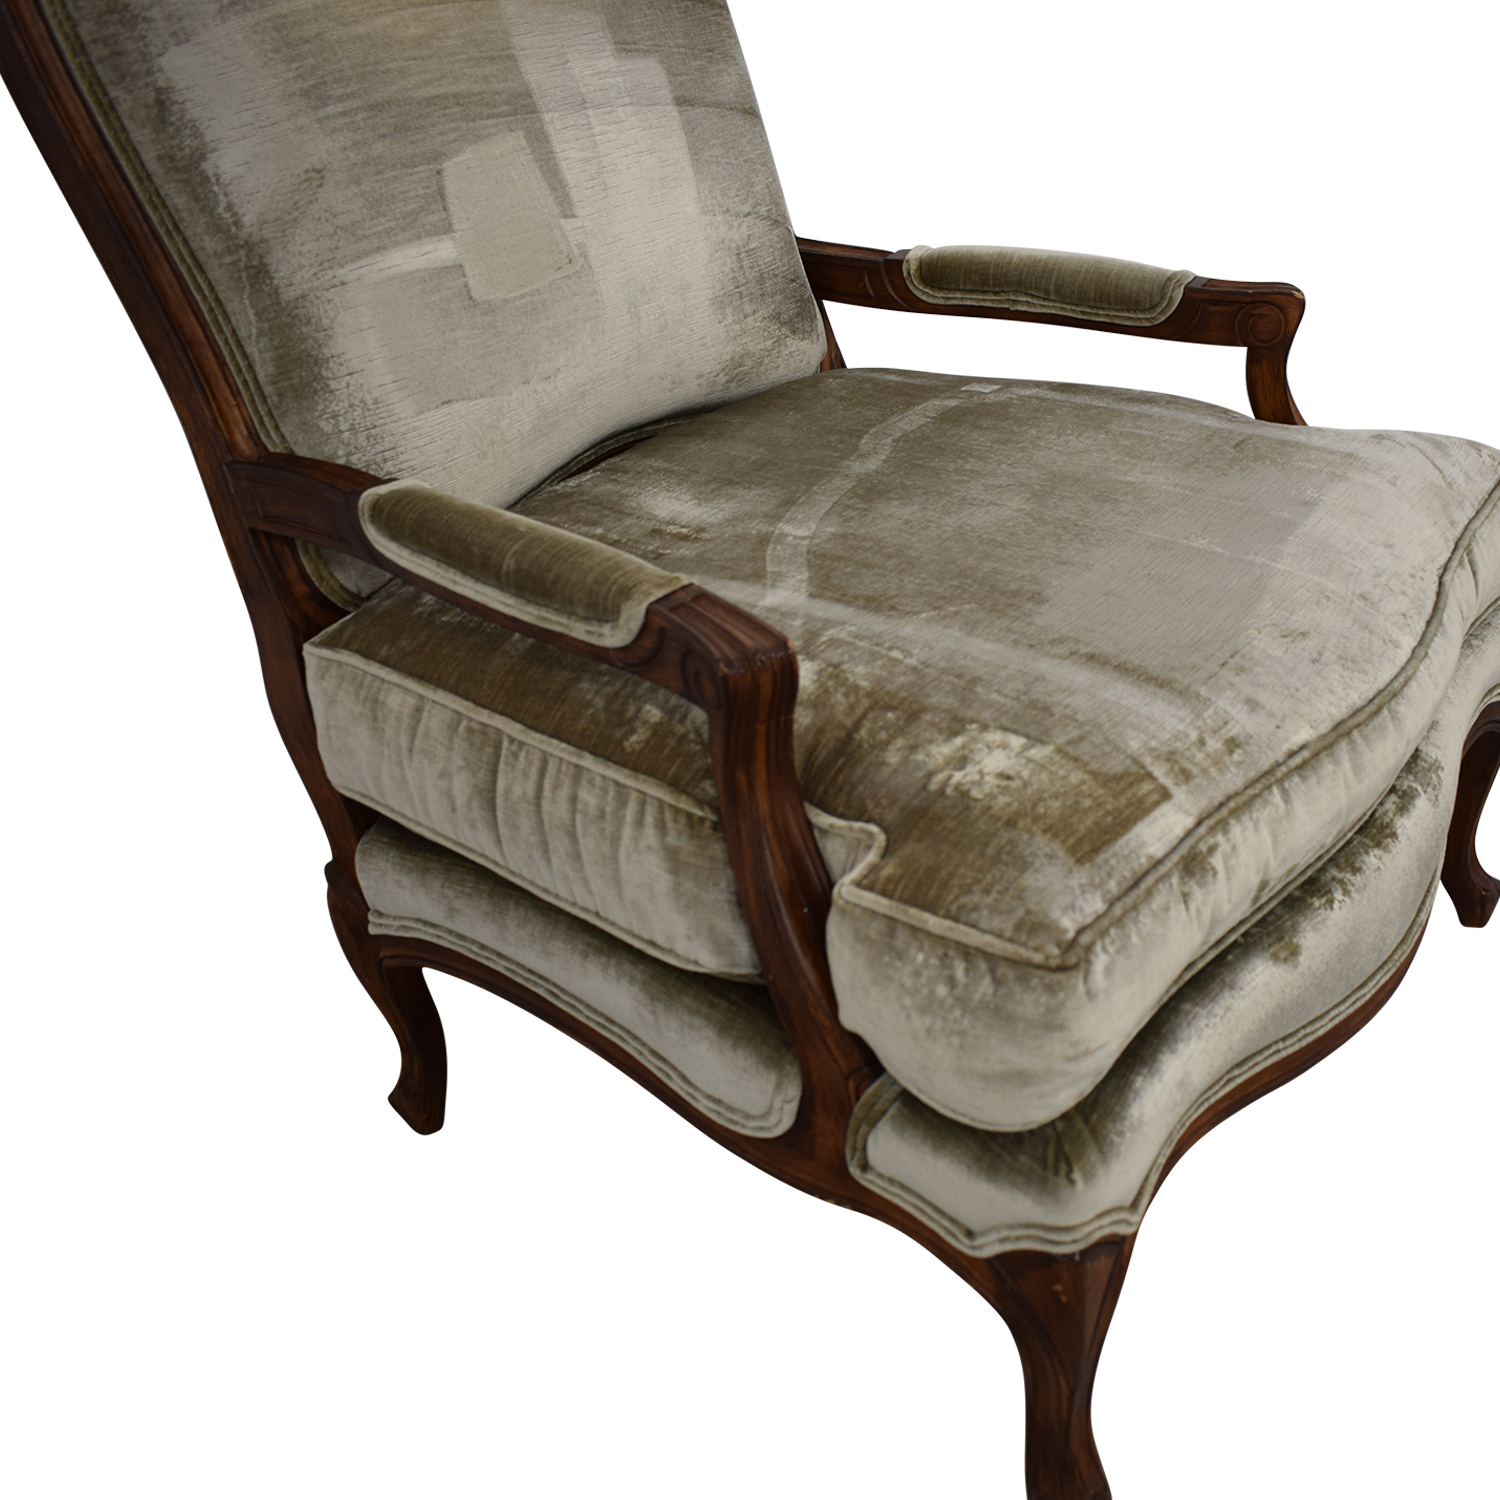 buy Drexel Heritage Country French Accent Chair Drexel Heritage Chairs